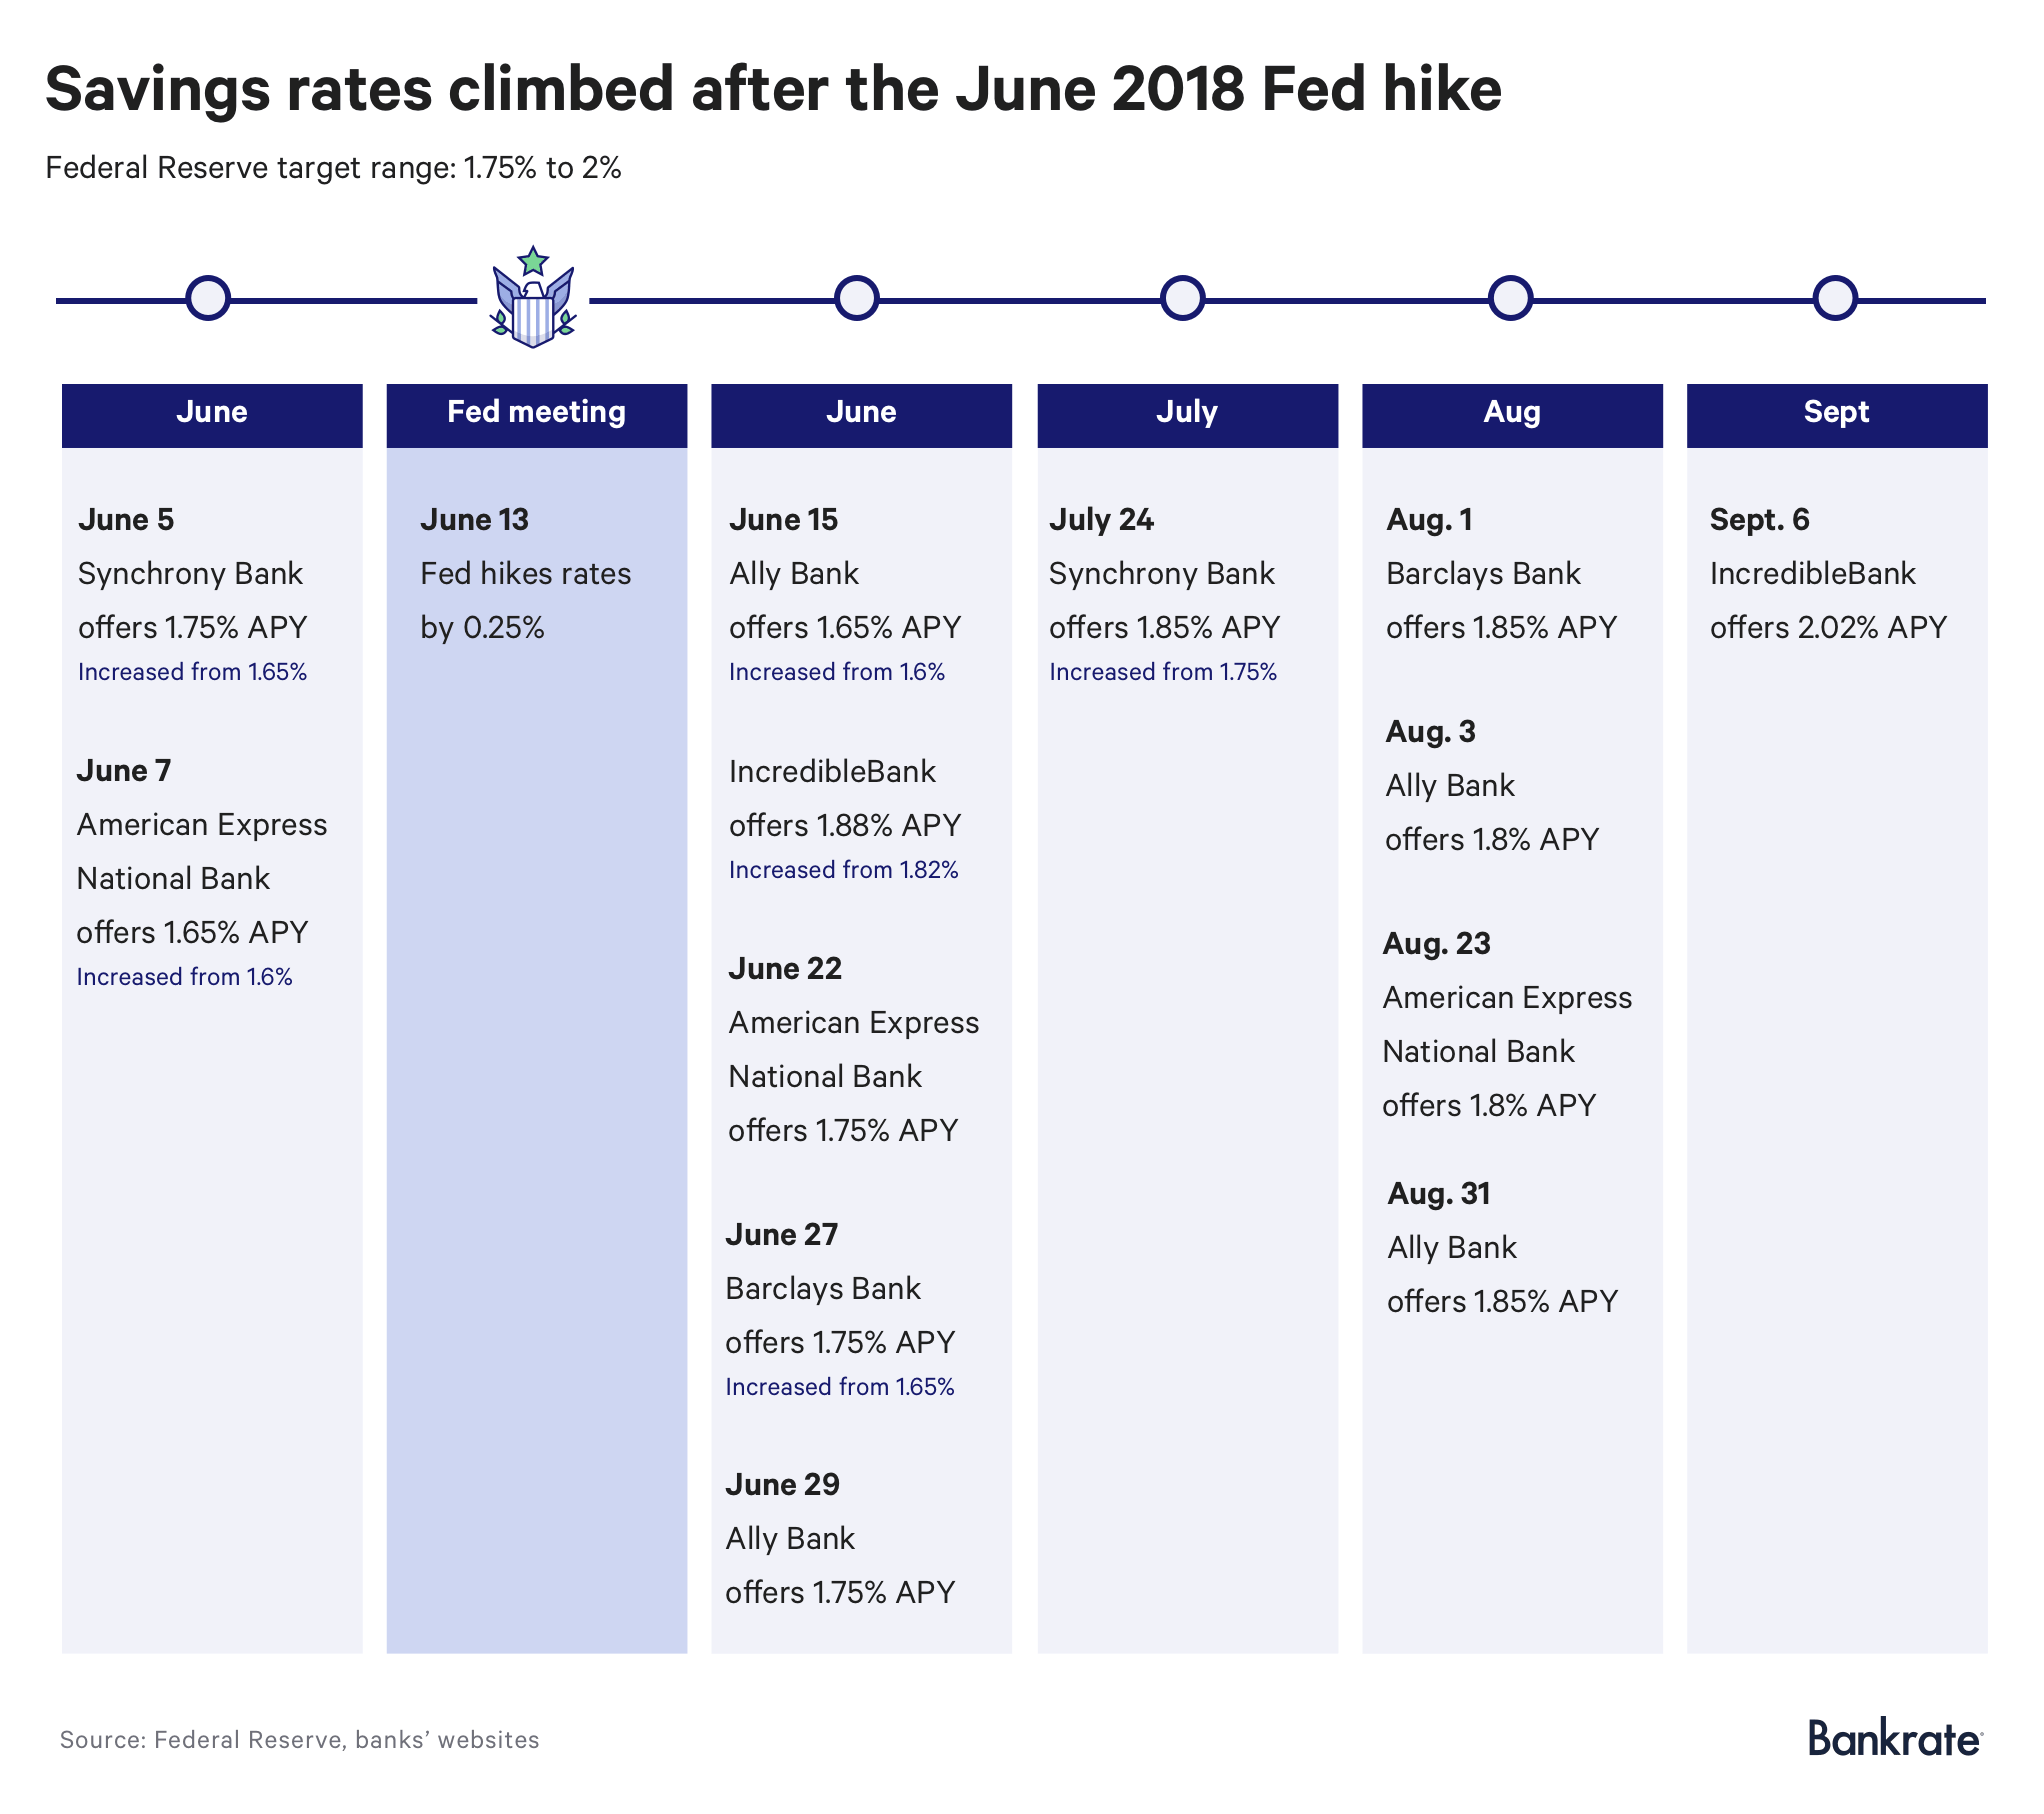 Timeline: Savings rate climbed after the June 2018 Fed hike